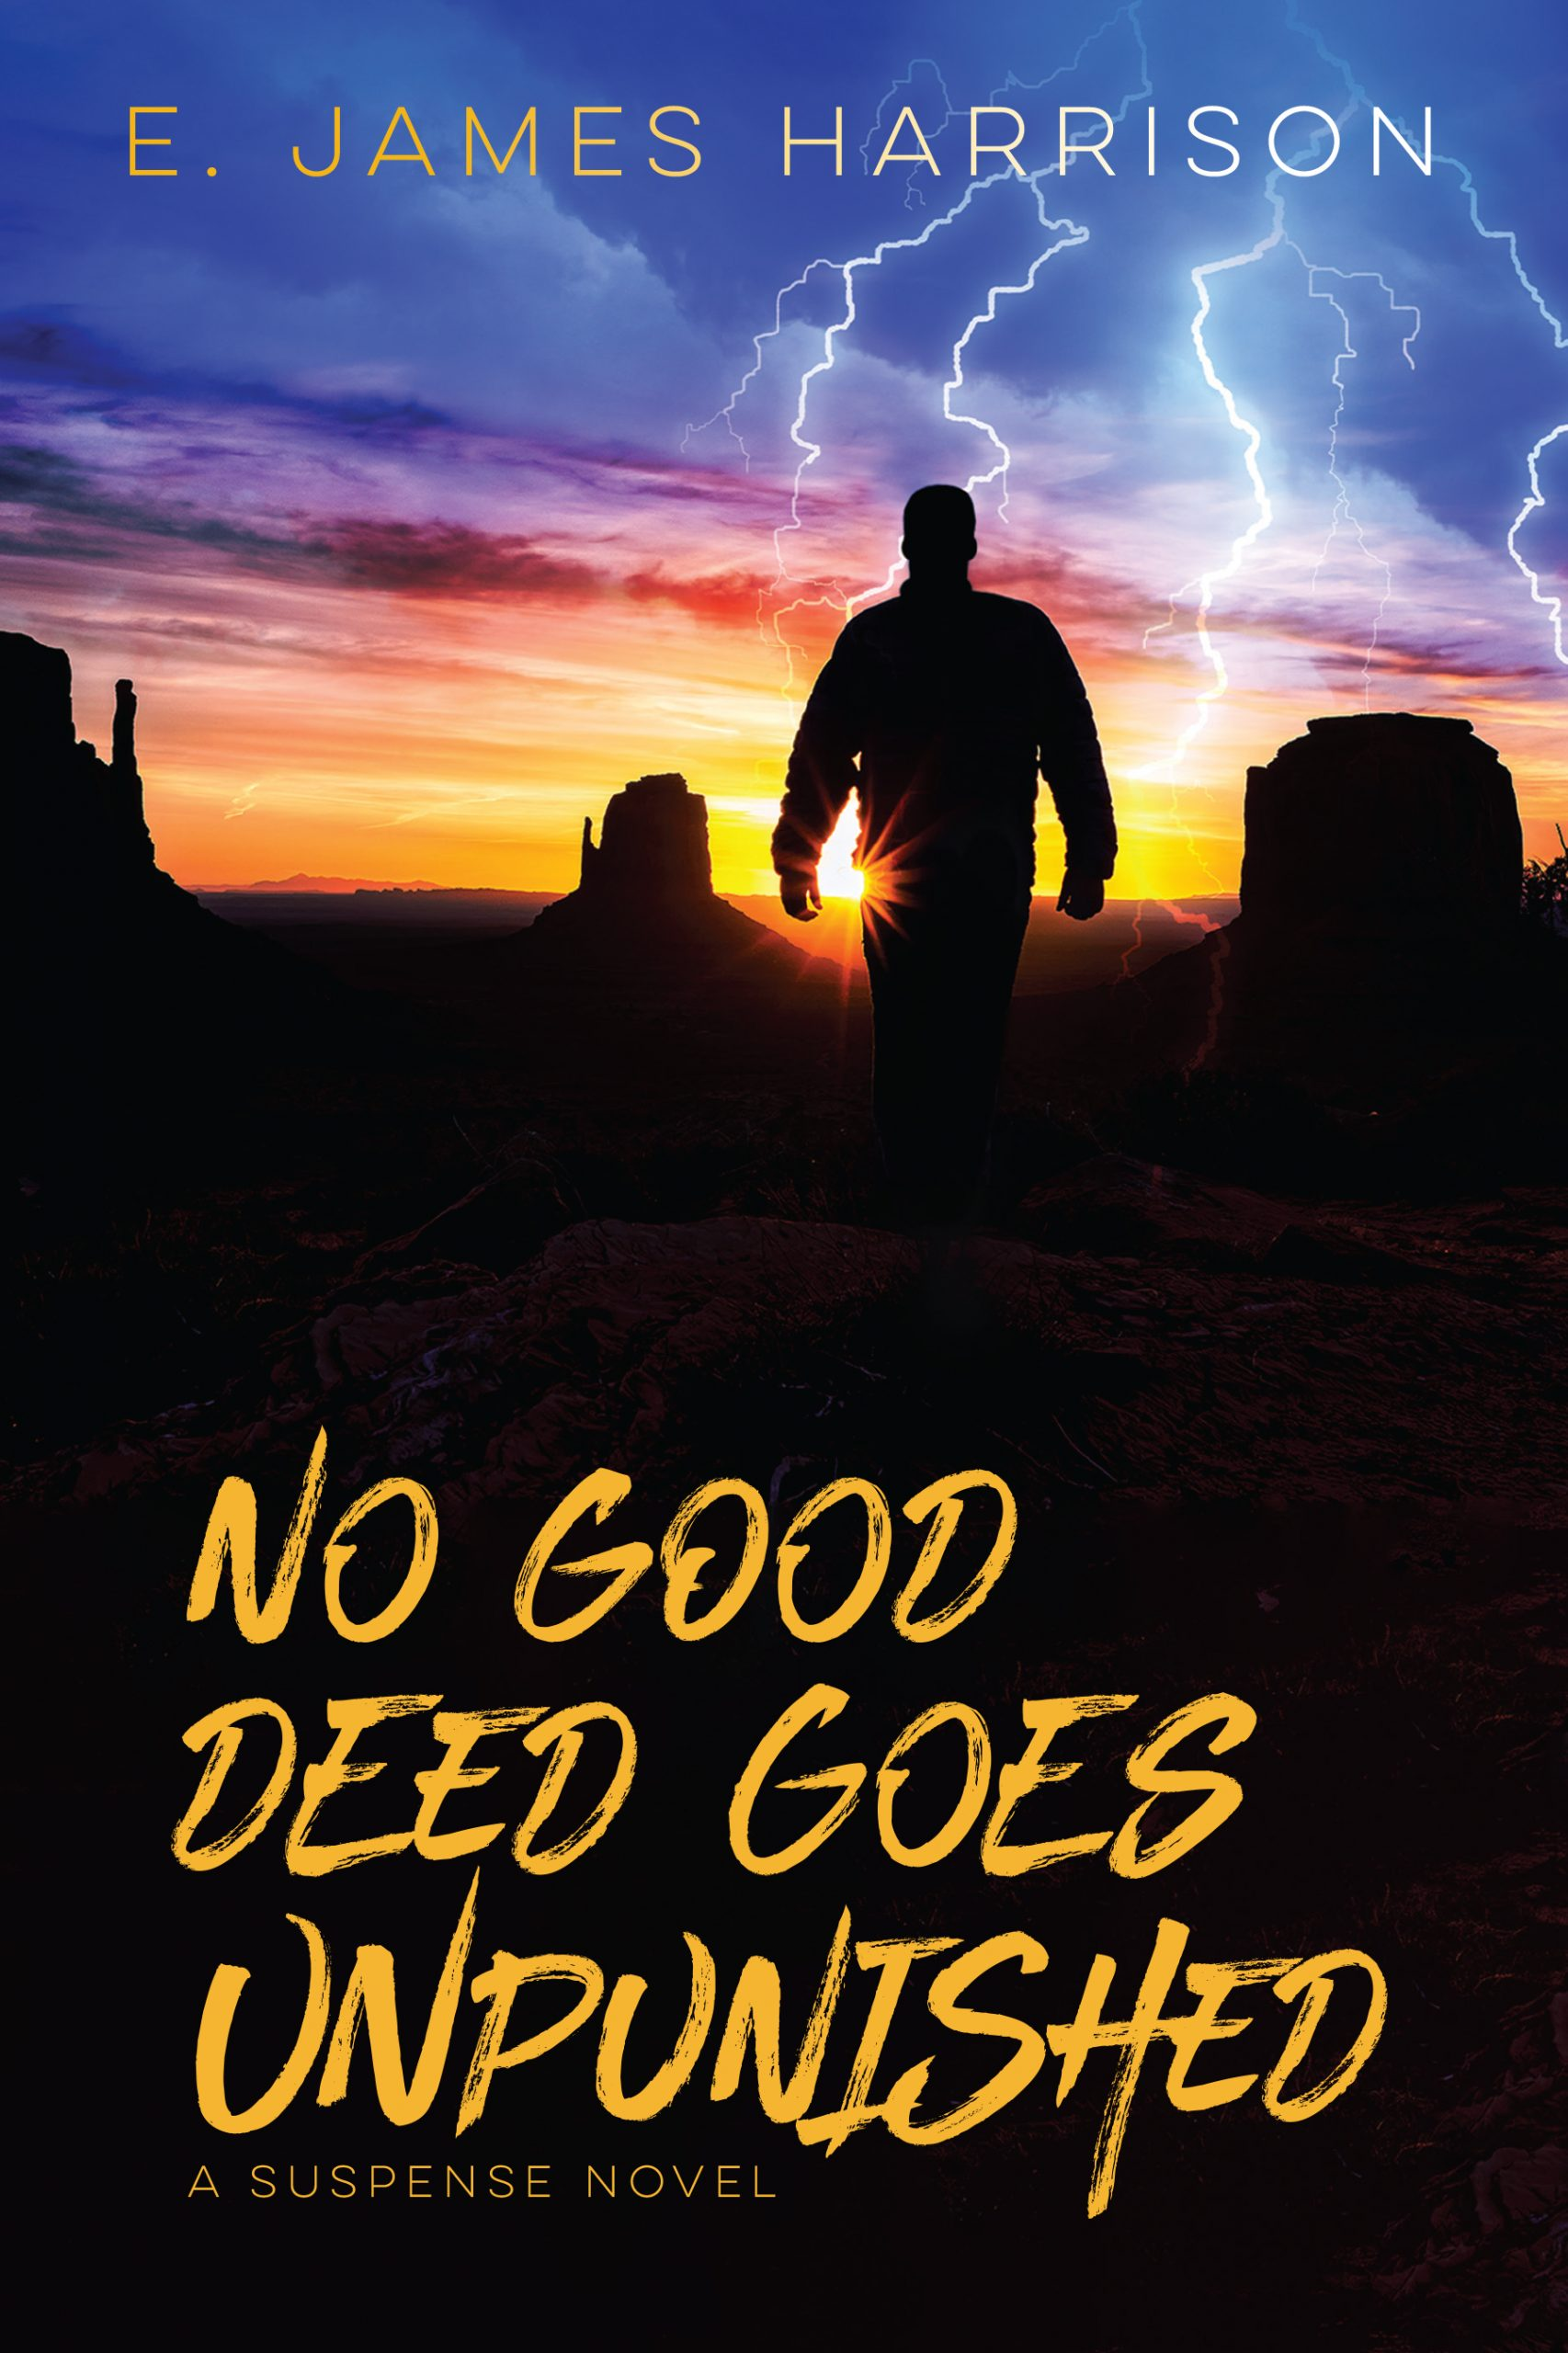 No Good Deed Goes Unpunished by E. James Harrison